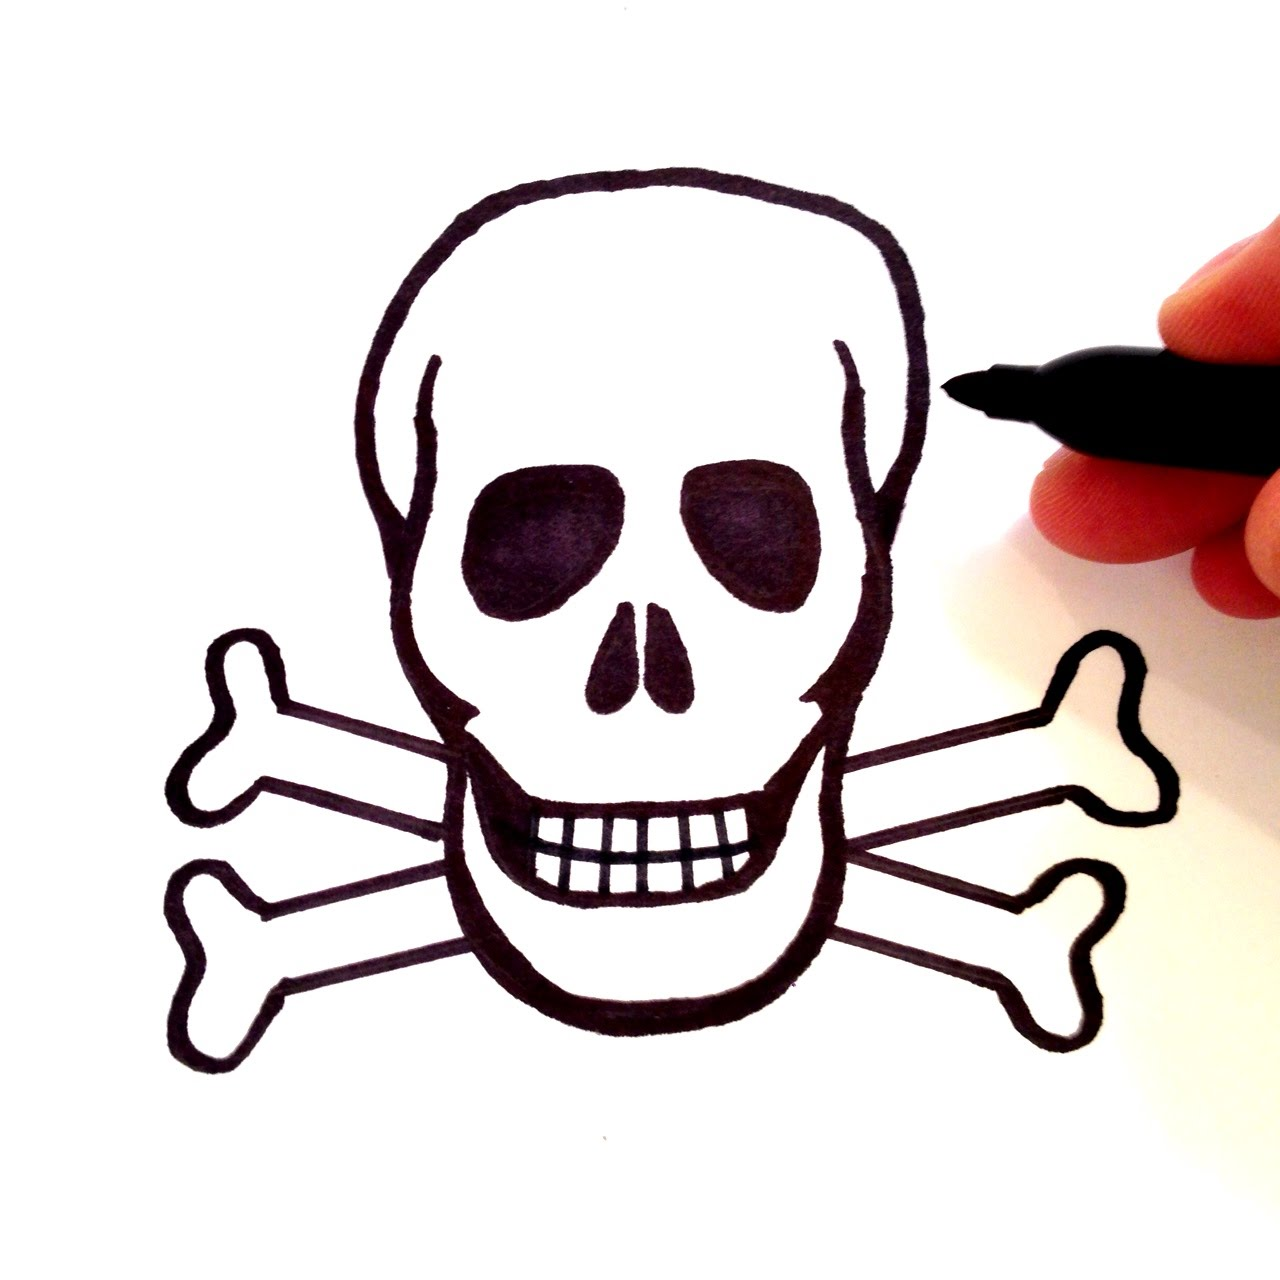 1280x1280 How To Draw A Skull With Crossbones